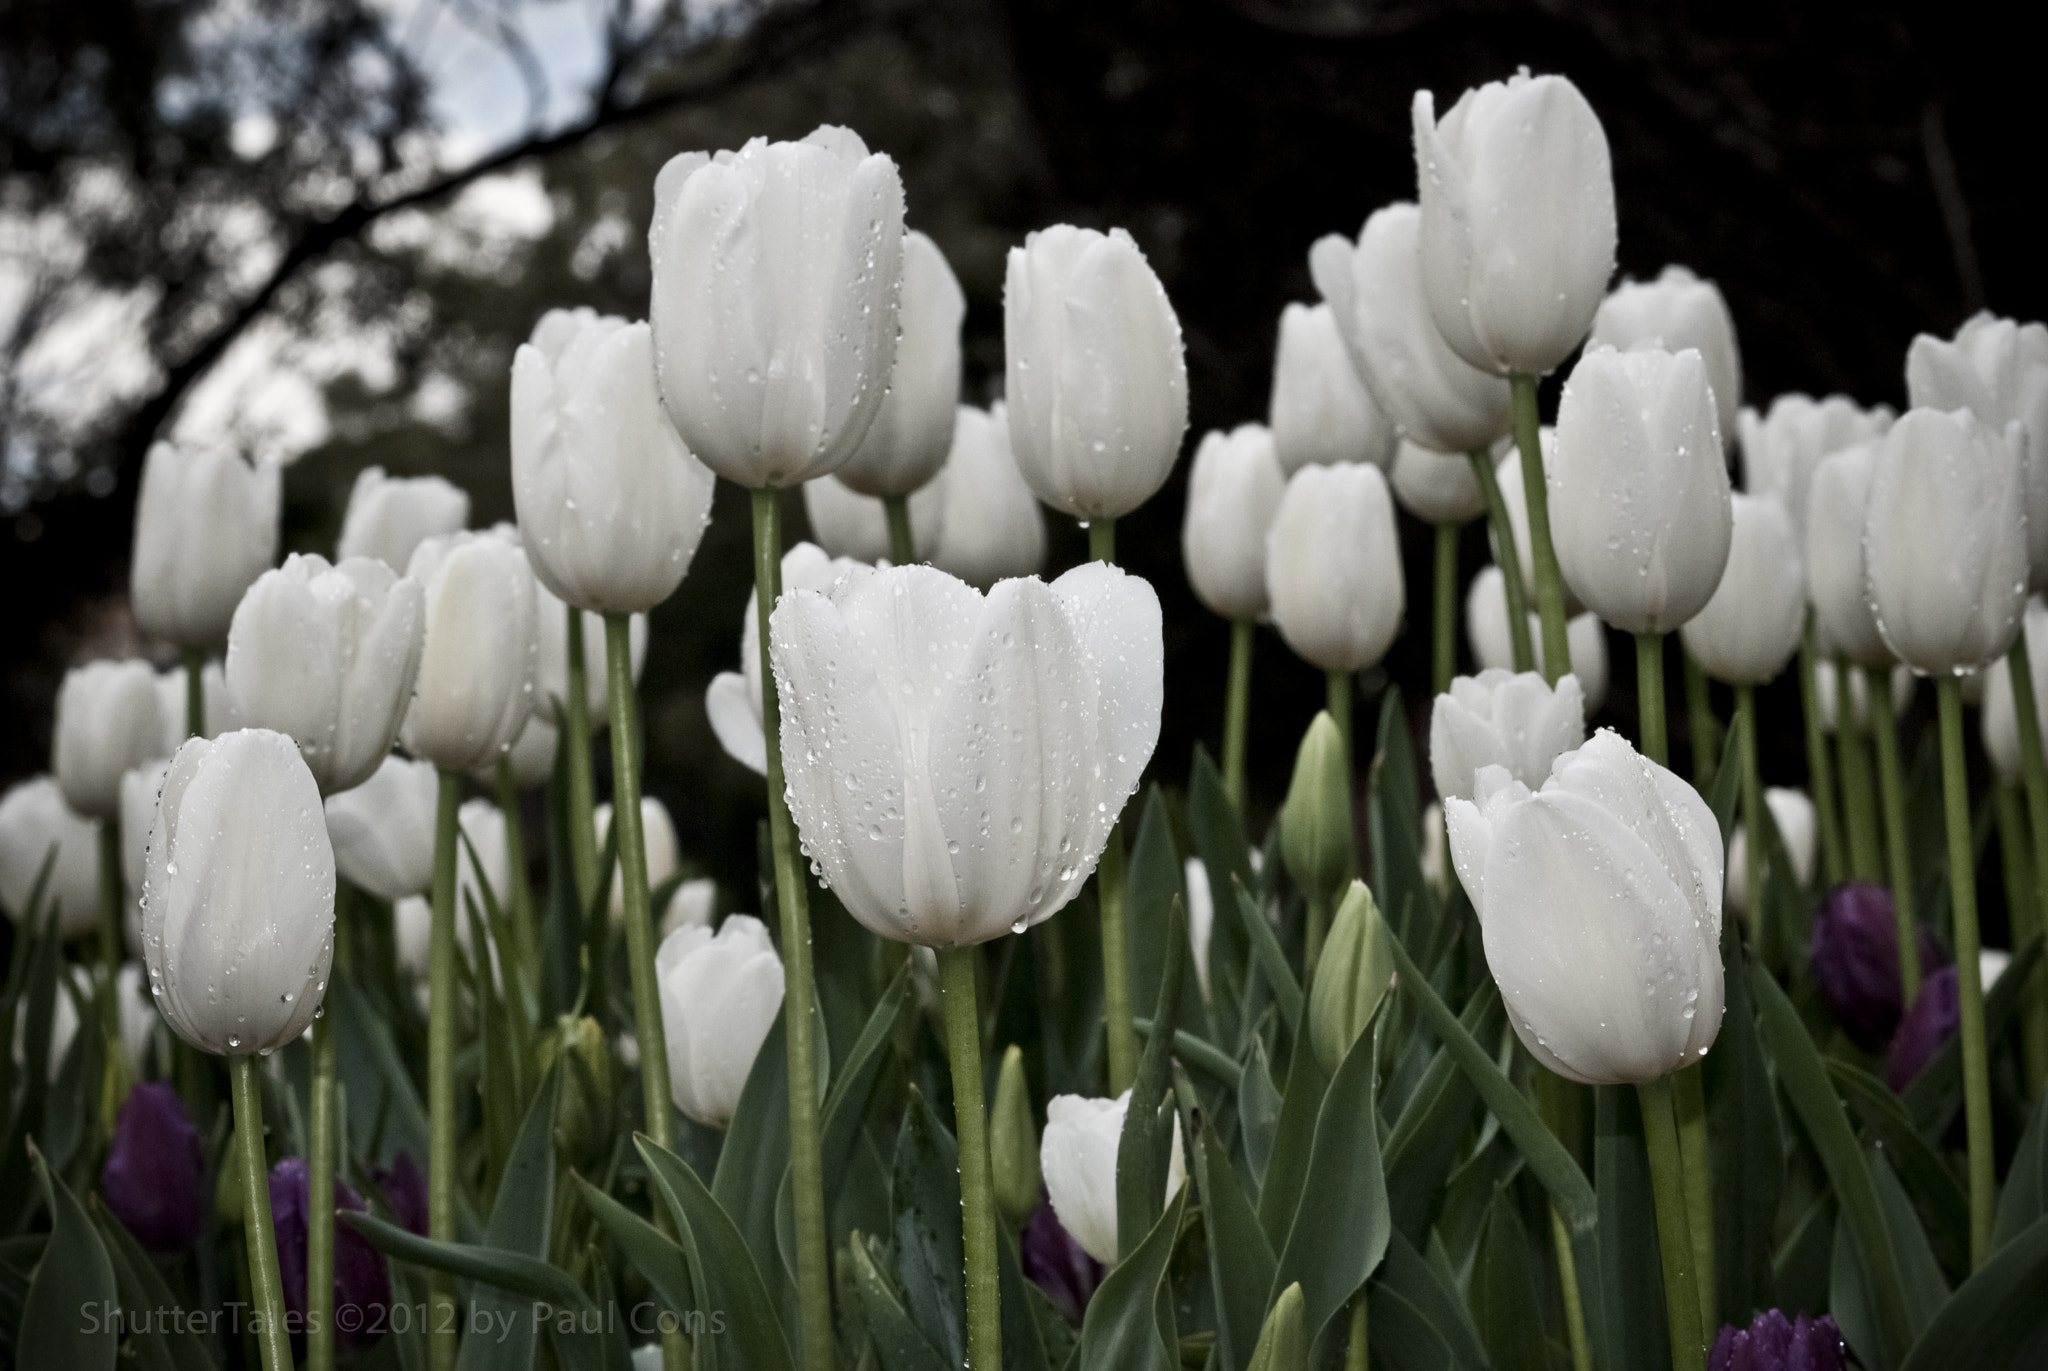 Photograph White Tulips by Paul Cons on 500px